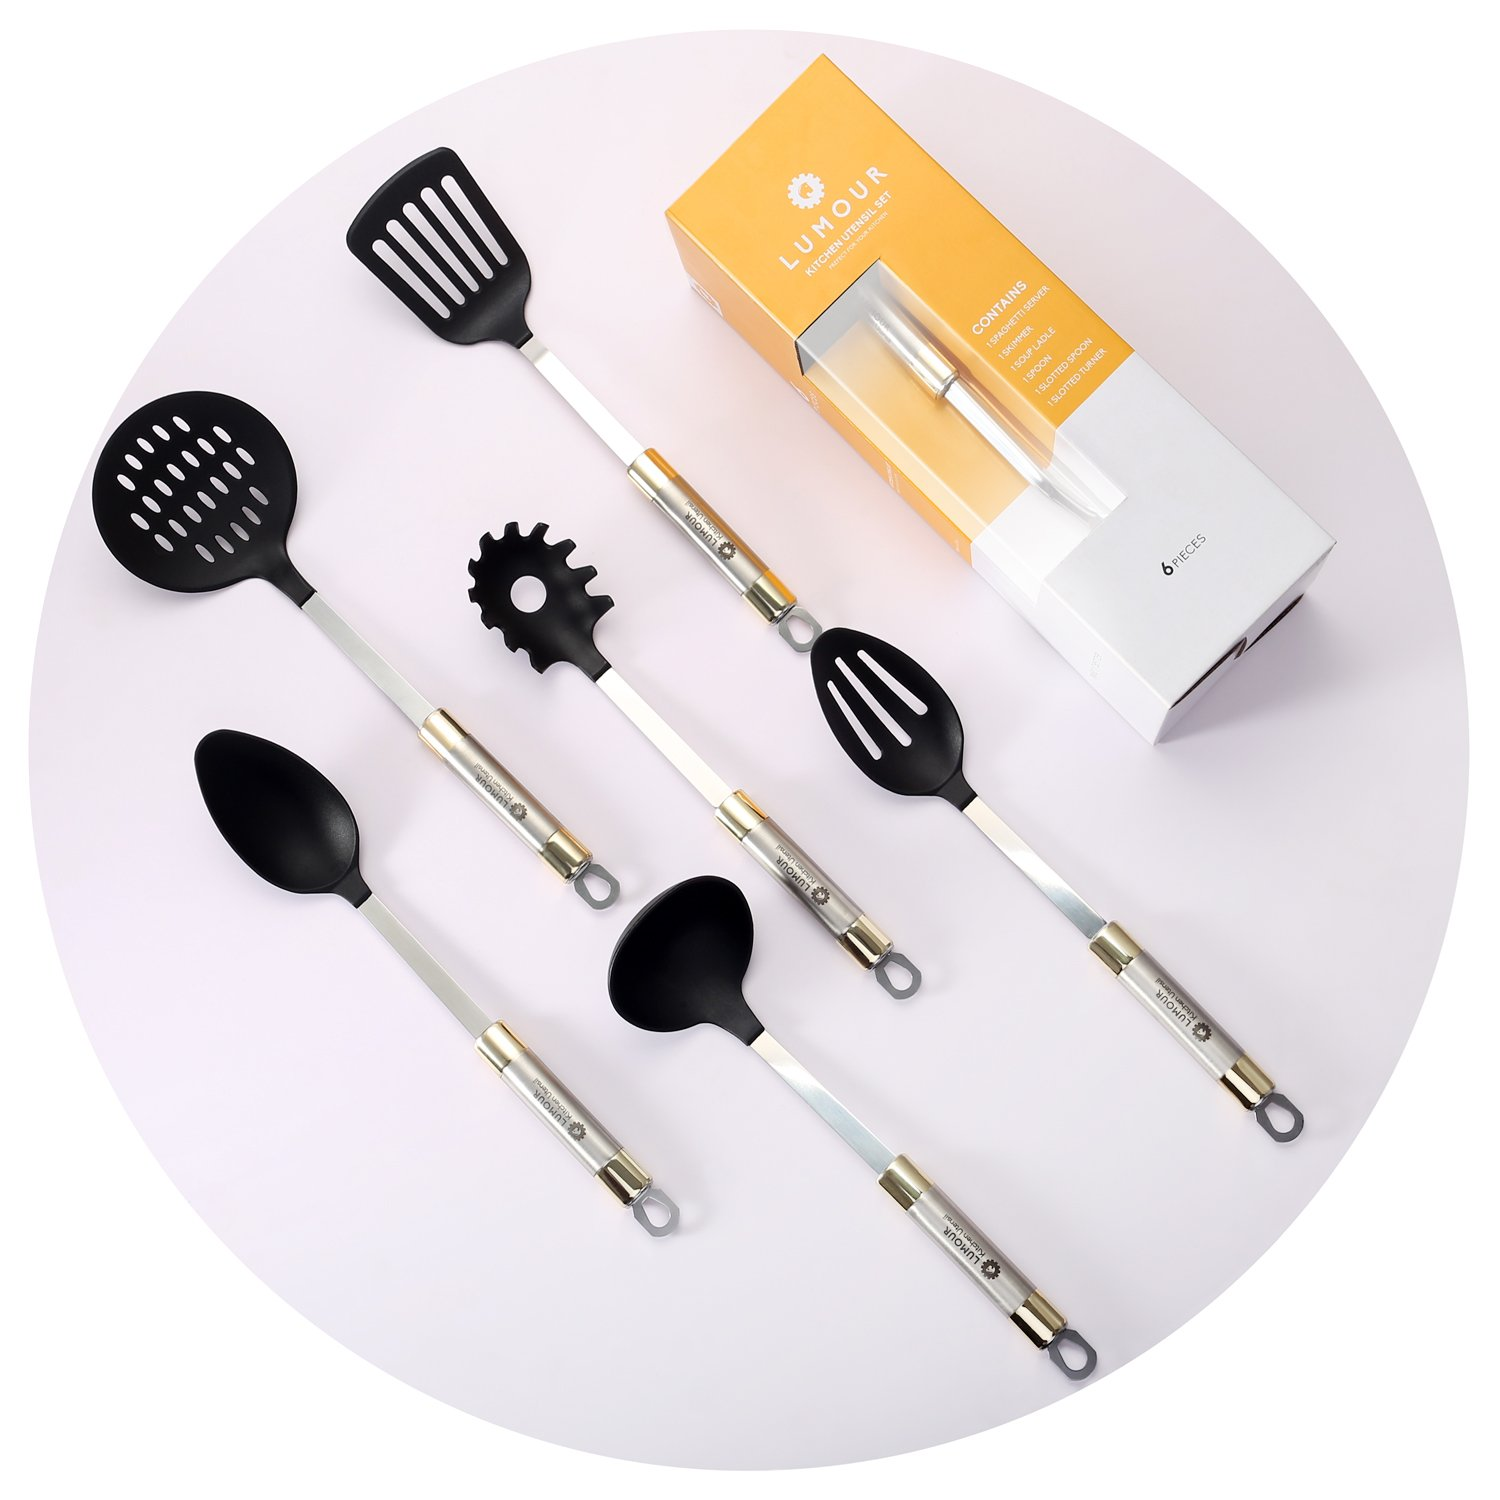 6 Piece Nonstick Nonscratch Kitchen Cooking Utensils, Nylon and Stainless Steel Kitchen Tools Set